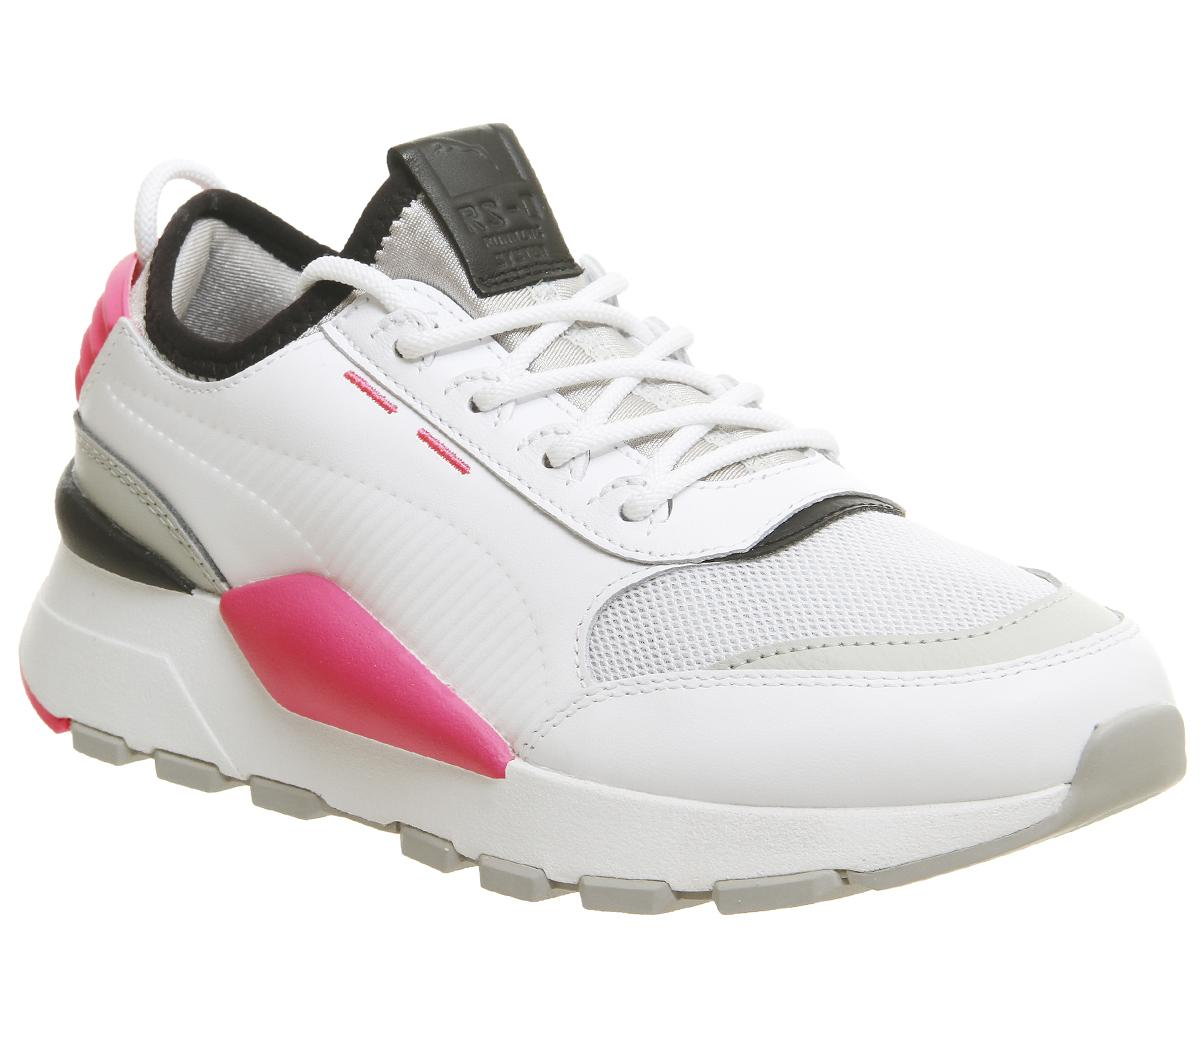 Edredón álbum Molester  Puma Rs-0 Sound Trainers Puma White Grey Knockout Pink - Hers trainers